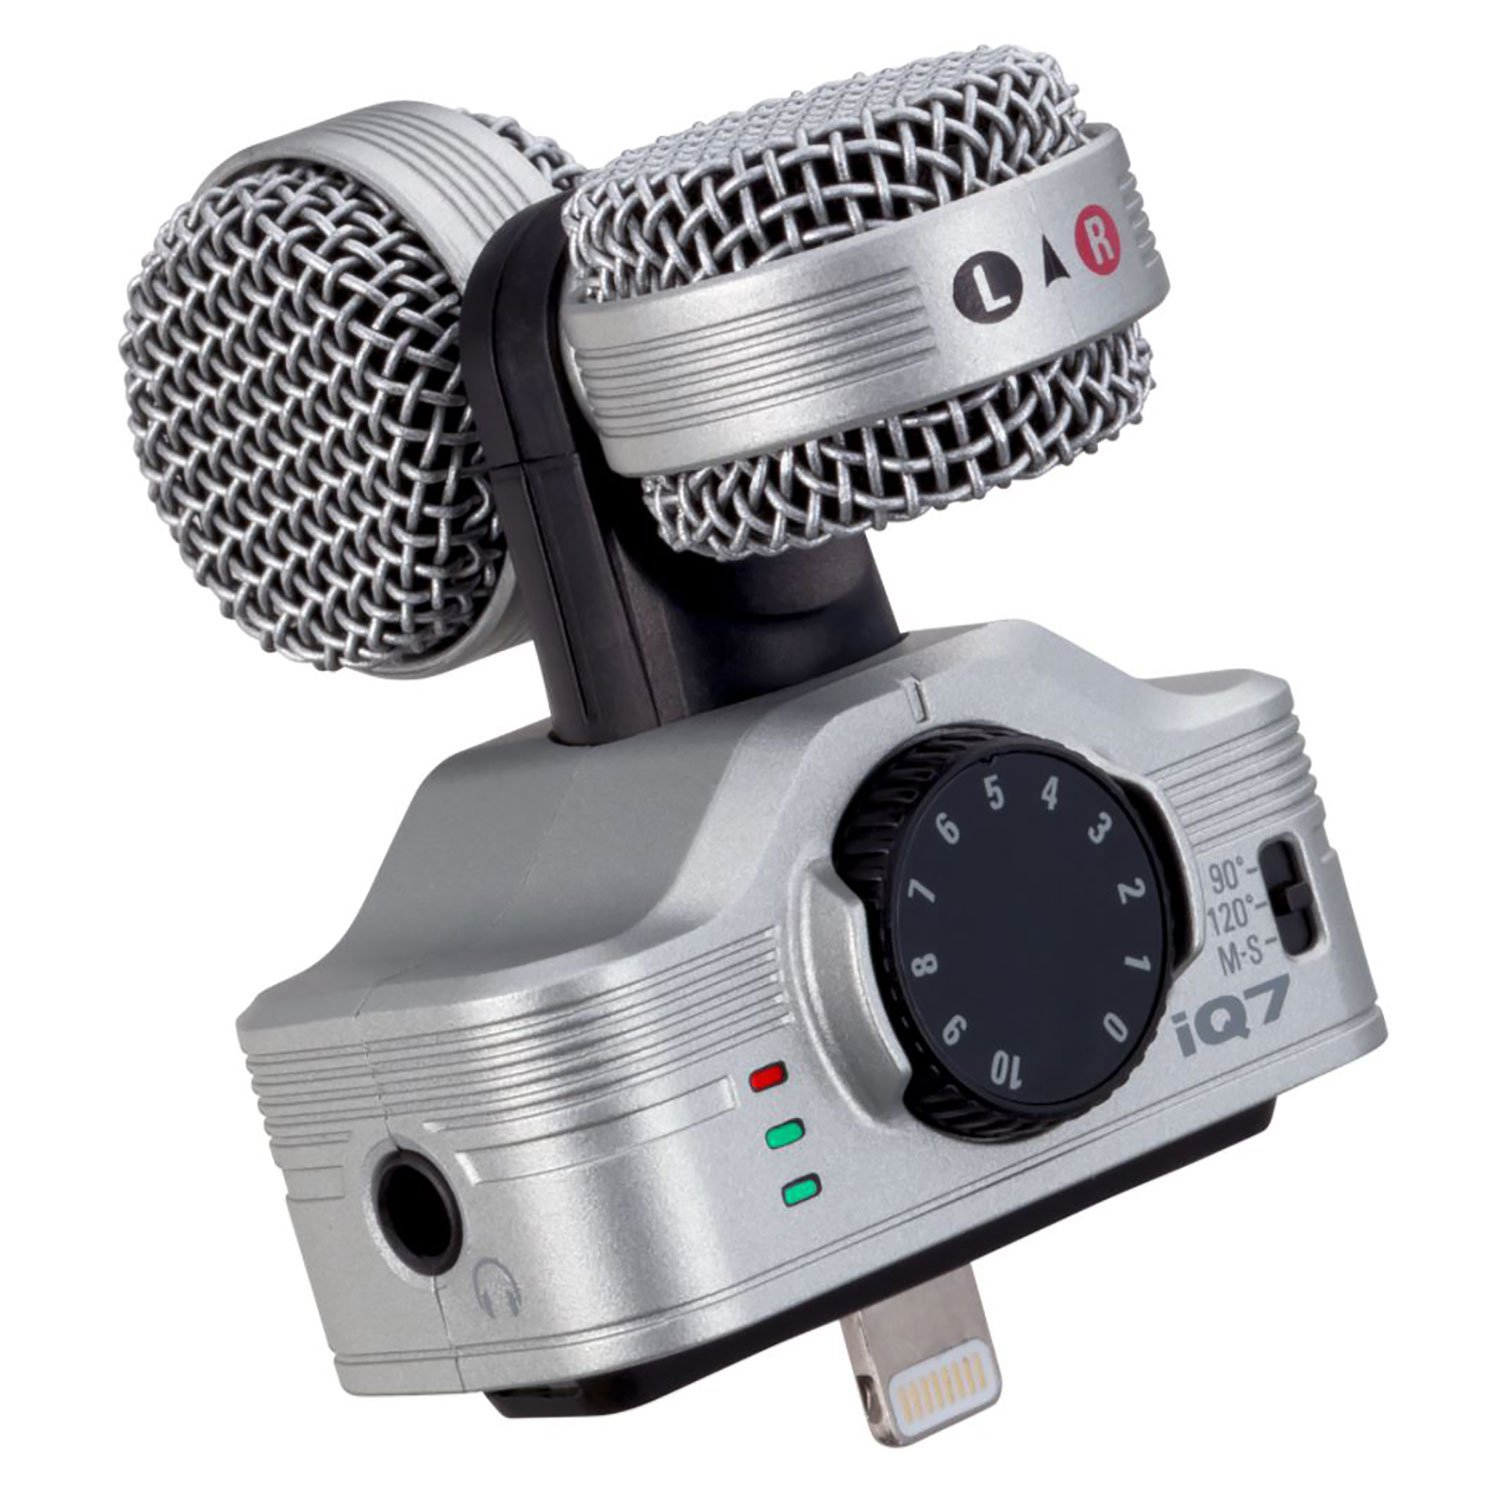 Zoom iQ7 Professional Stereo Lightning Connector for iOS Microphone Recorder